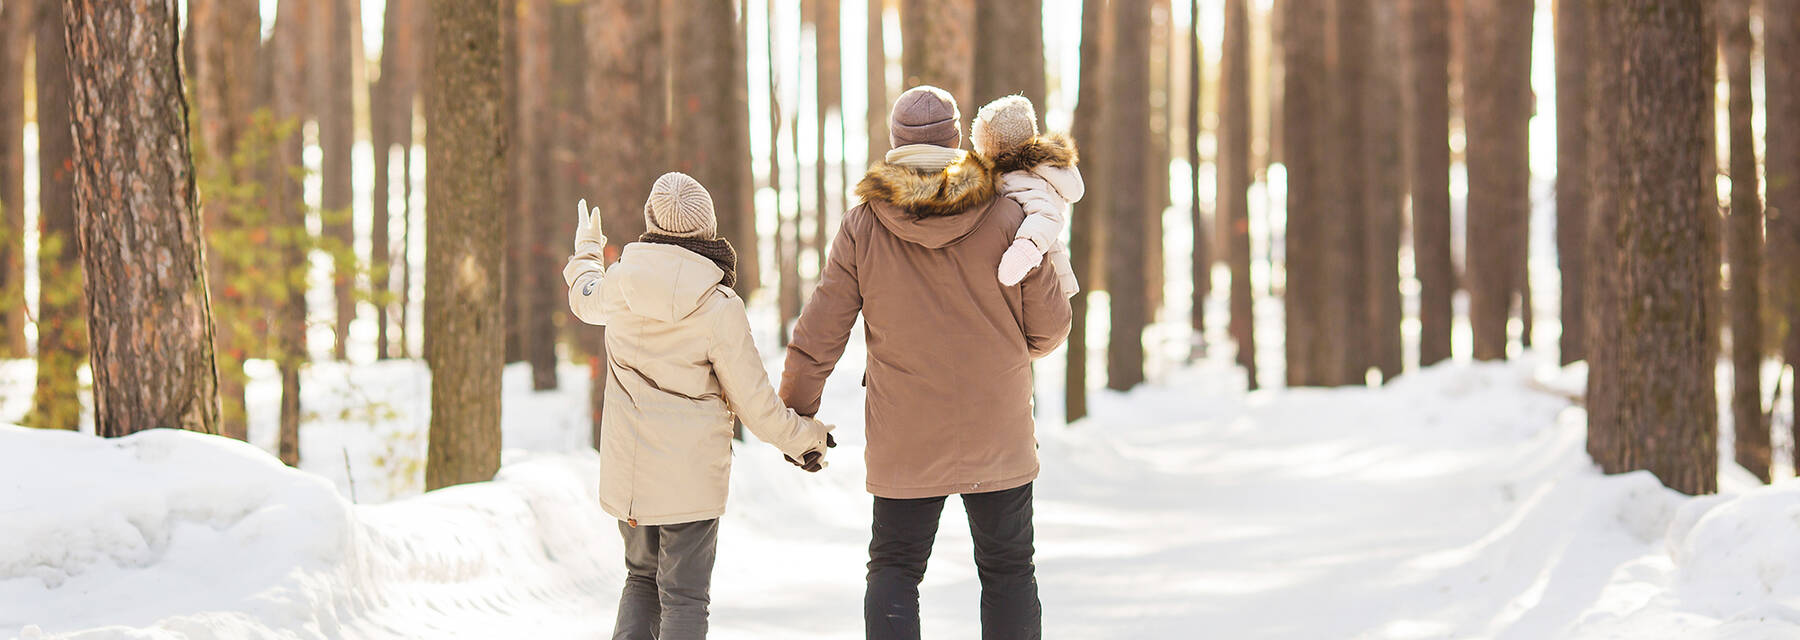 A family walks in snowy woods